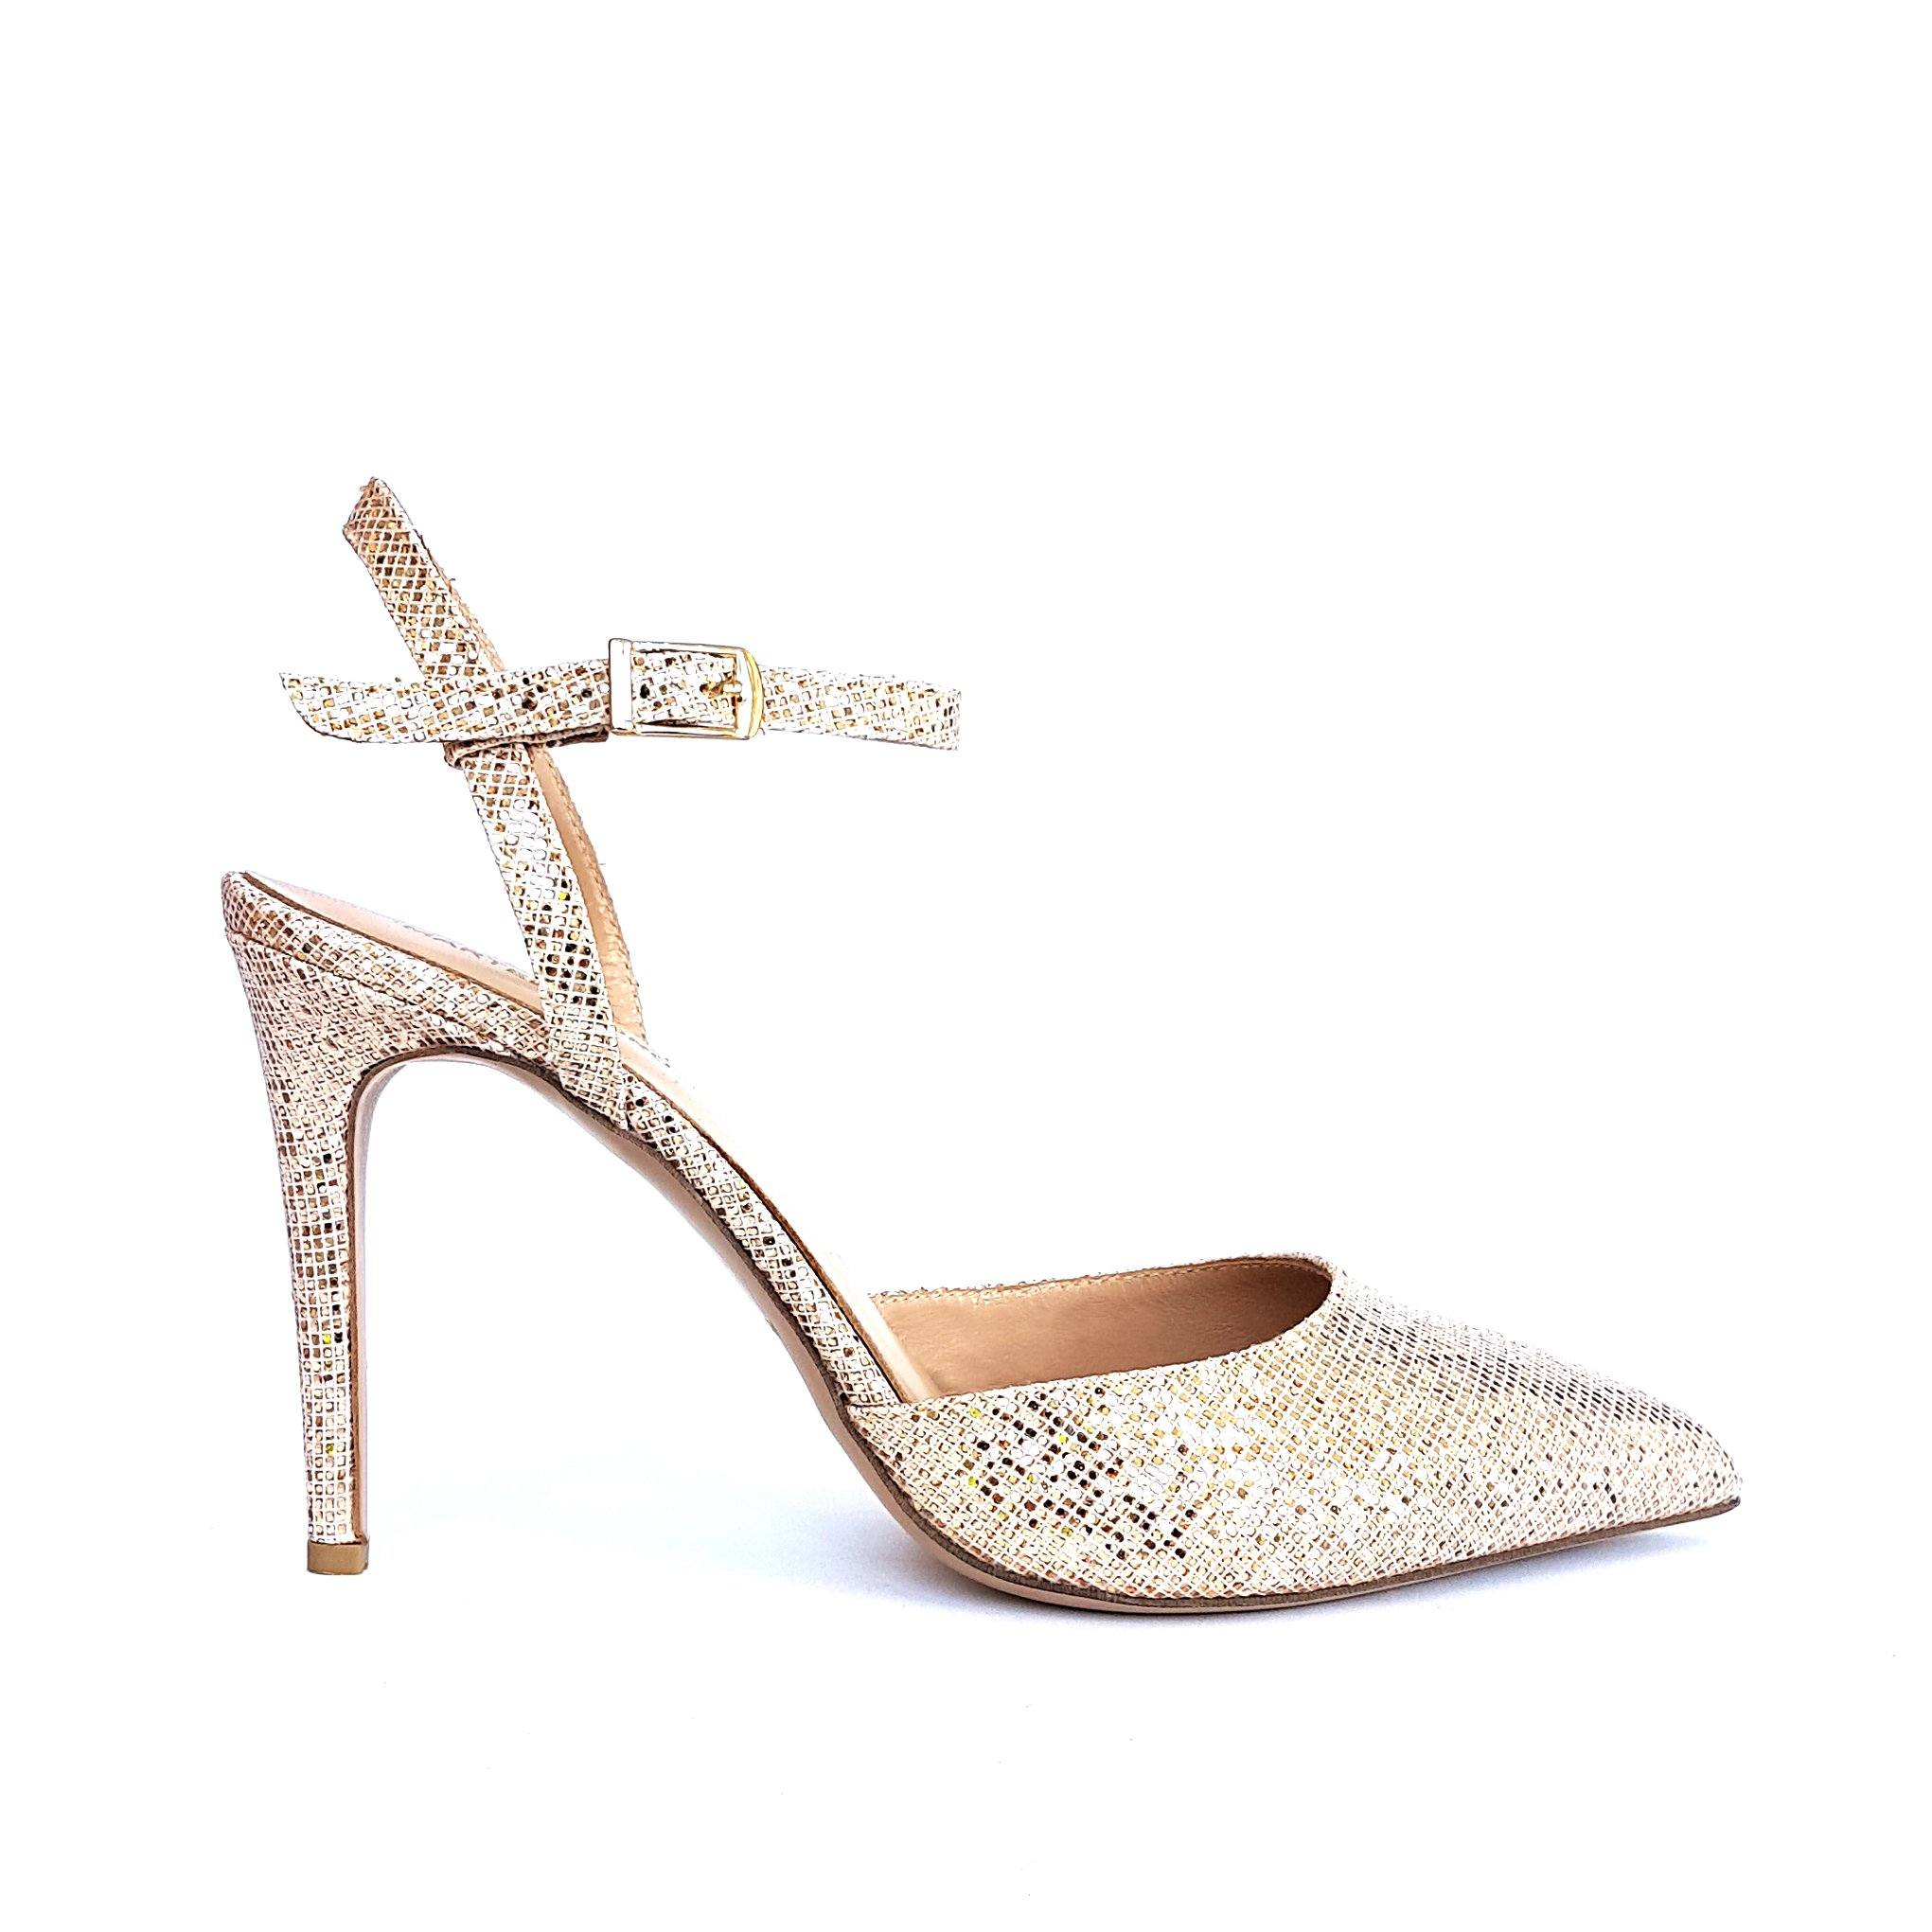 Martello Oro, Crystal sandals, Bridal sandals, party sandals, wedding sandals, Swarovski sandals, bridal shoes